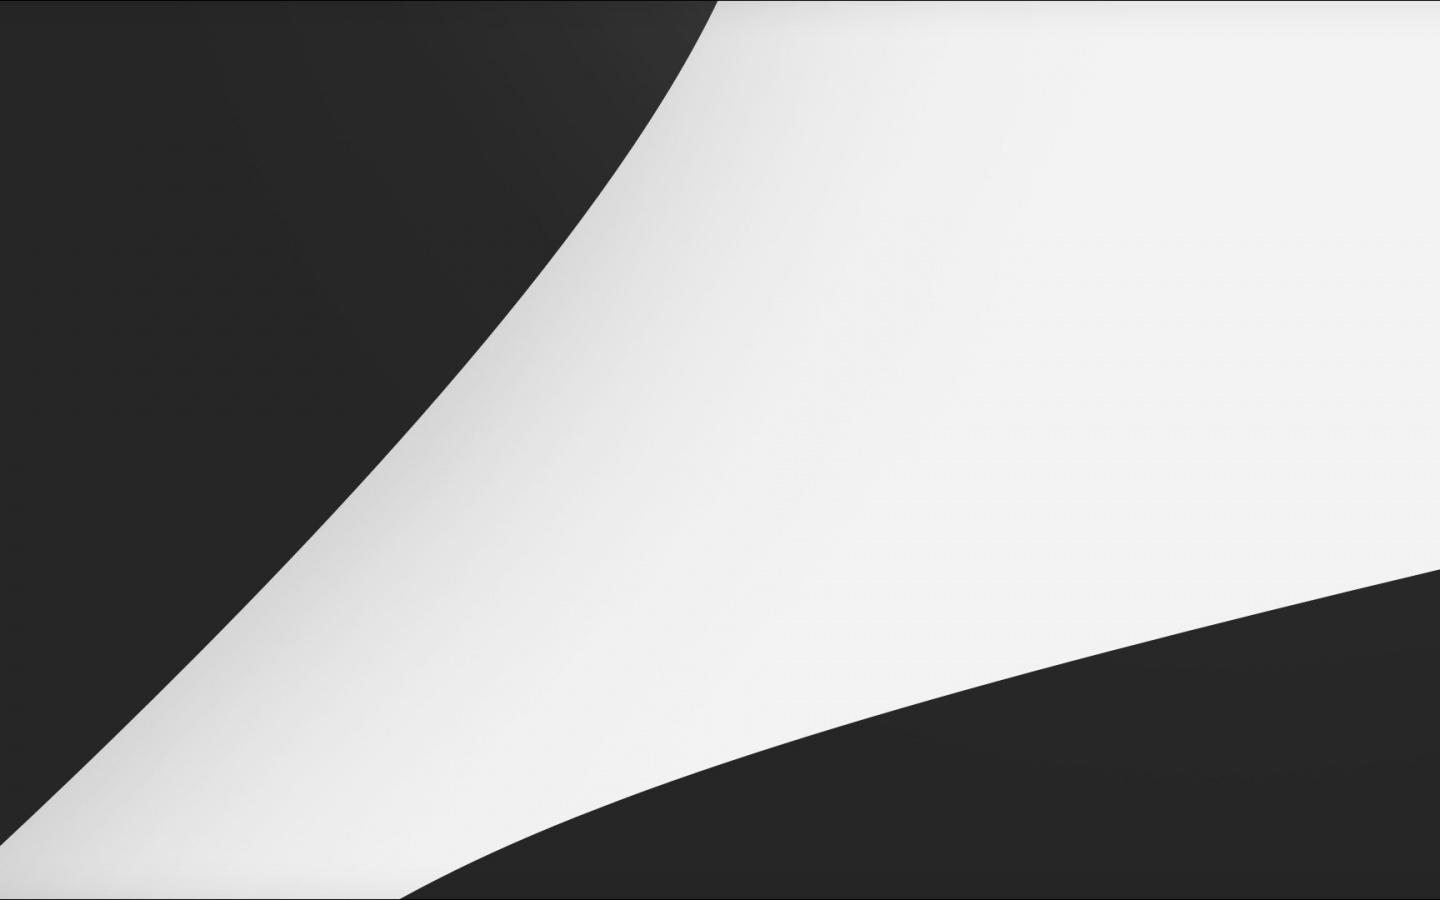 Free Download Black And White Abstract Wallpapers 1440x900